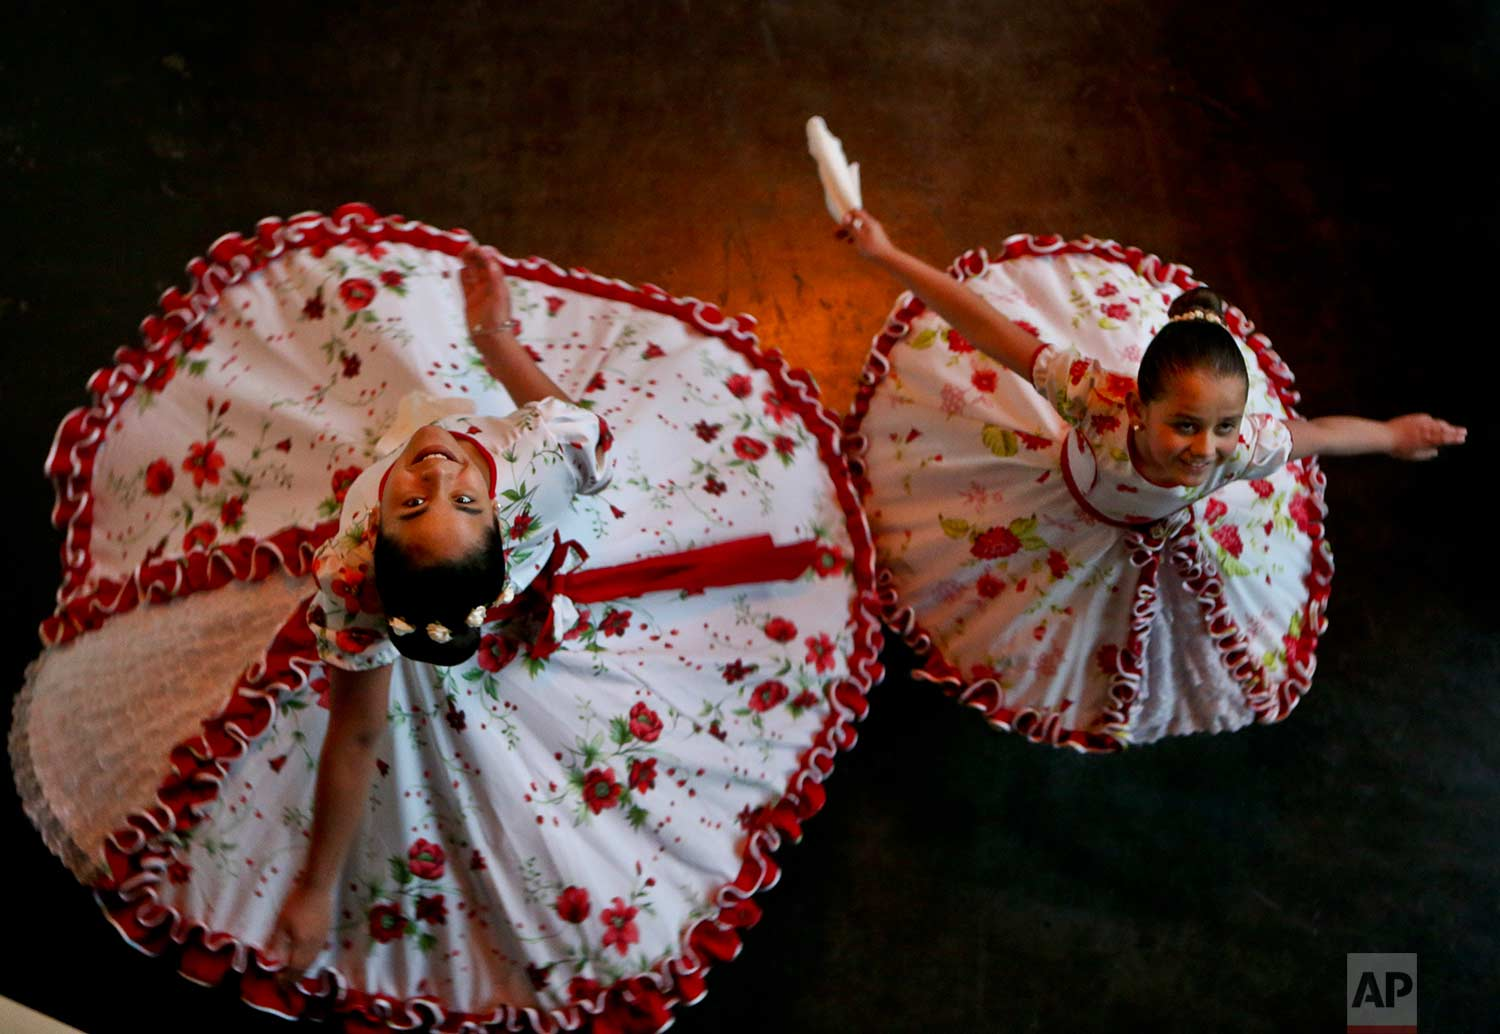 Transgender girls Josefa, 13, left, and Selenna, 8, pose for a picture as they twirl in traditional Chilean dance costumes before an event marking Transgender Children Day in Santiago, Chile on Saturday, Aug. 19, 2017. (AP Photo/Esteban Felix)